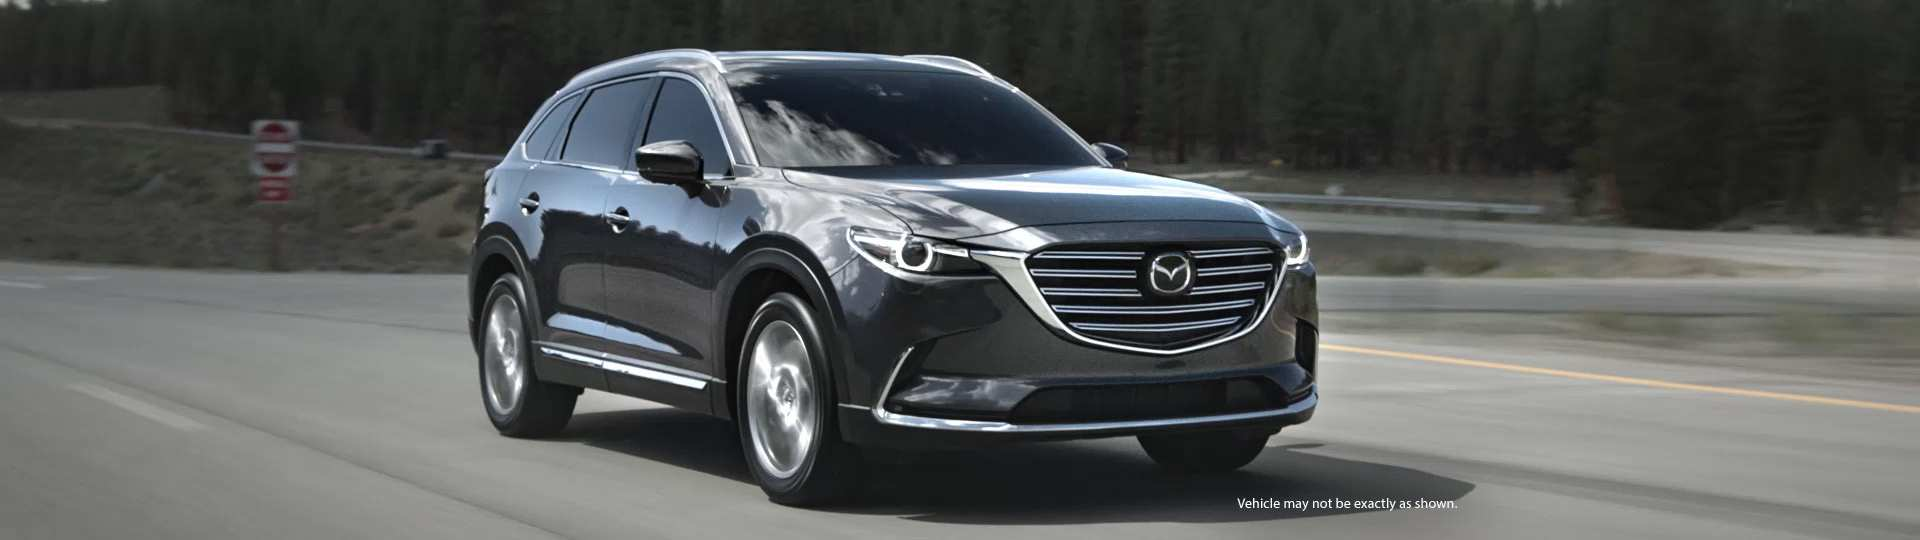 54 The Best 2019 Mazda Cx 9S Release